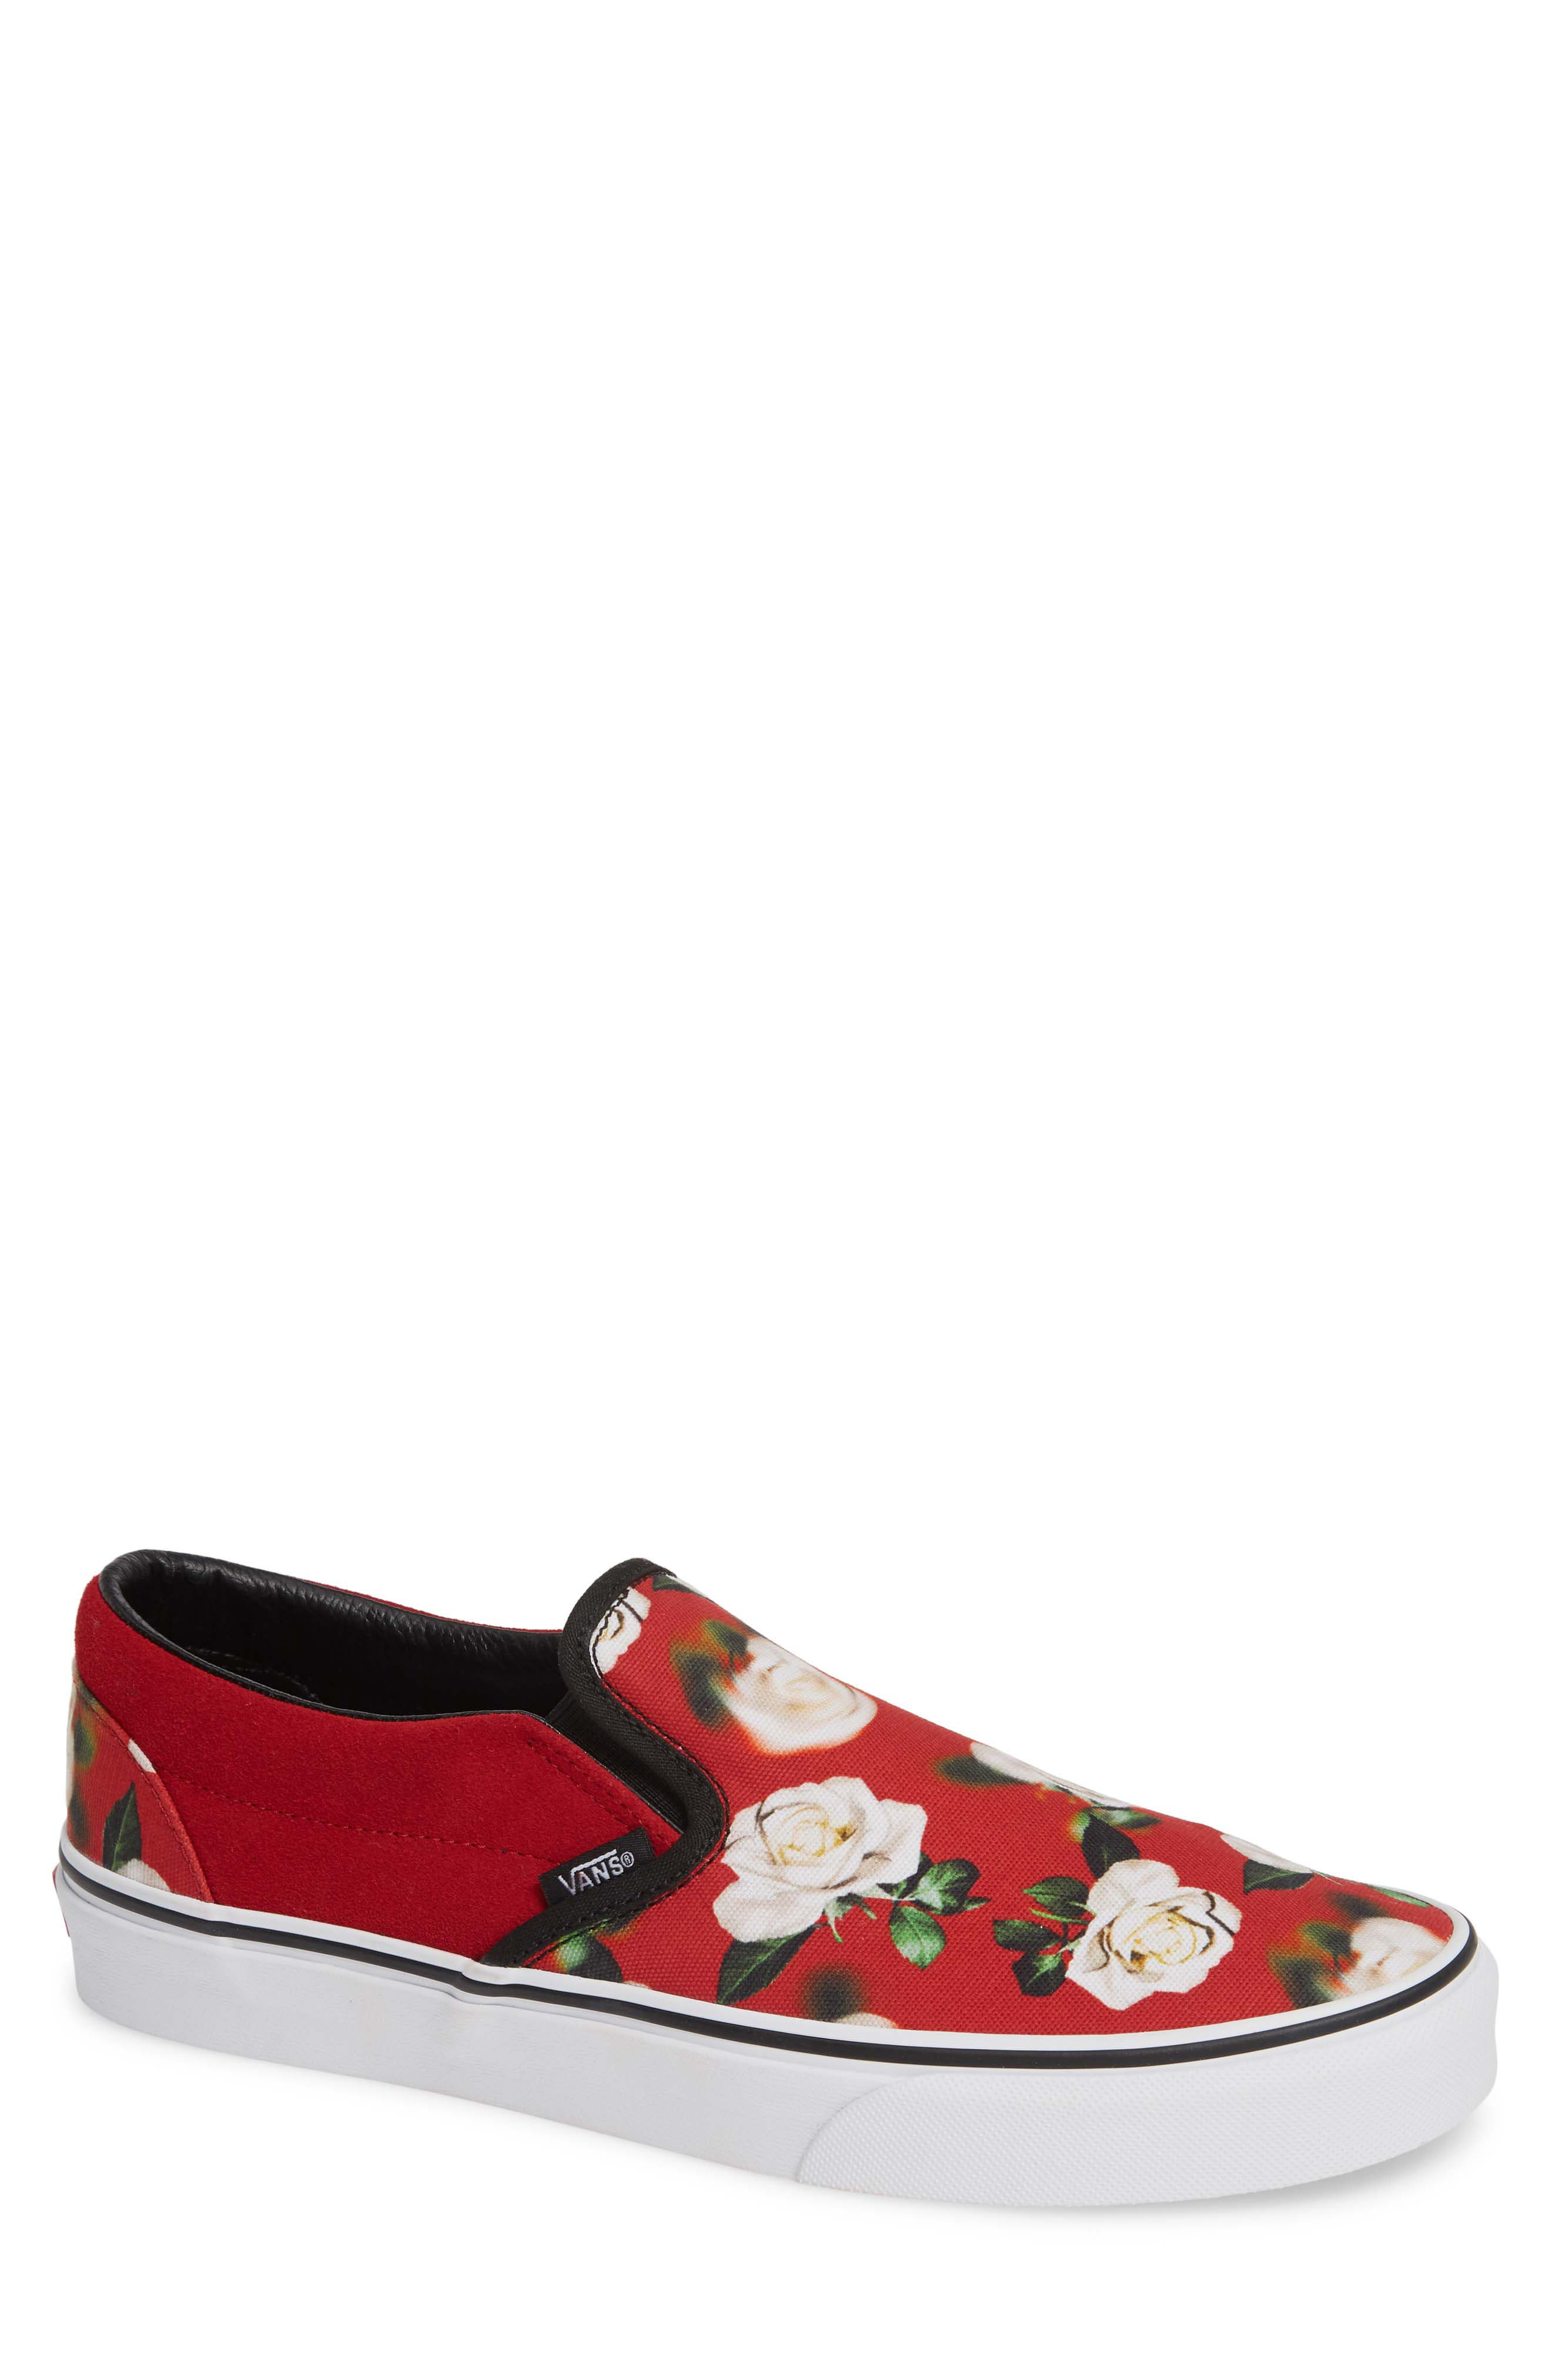 7922889d08cd6f Vans shoes and clothing for Men